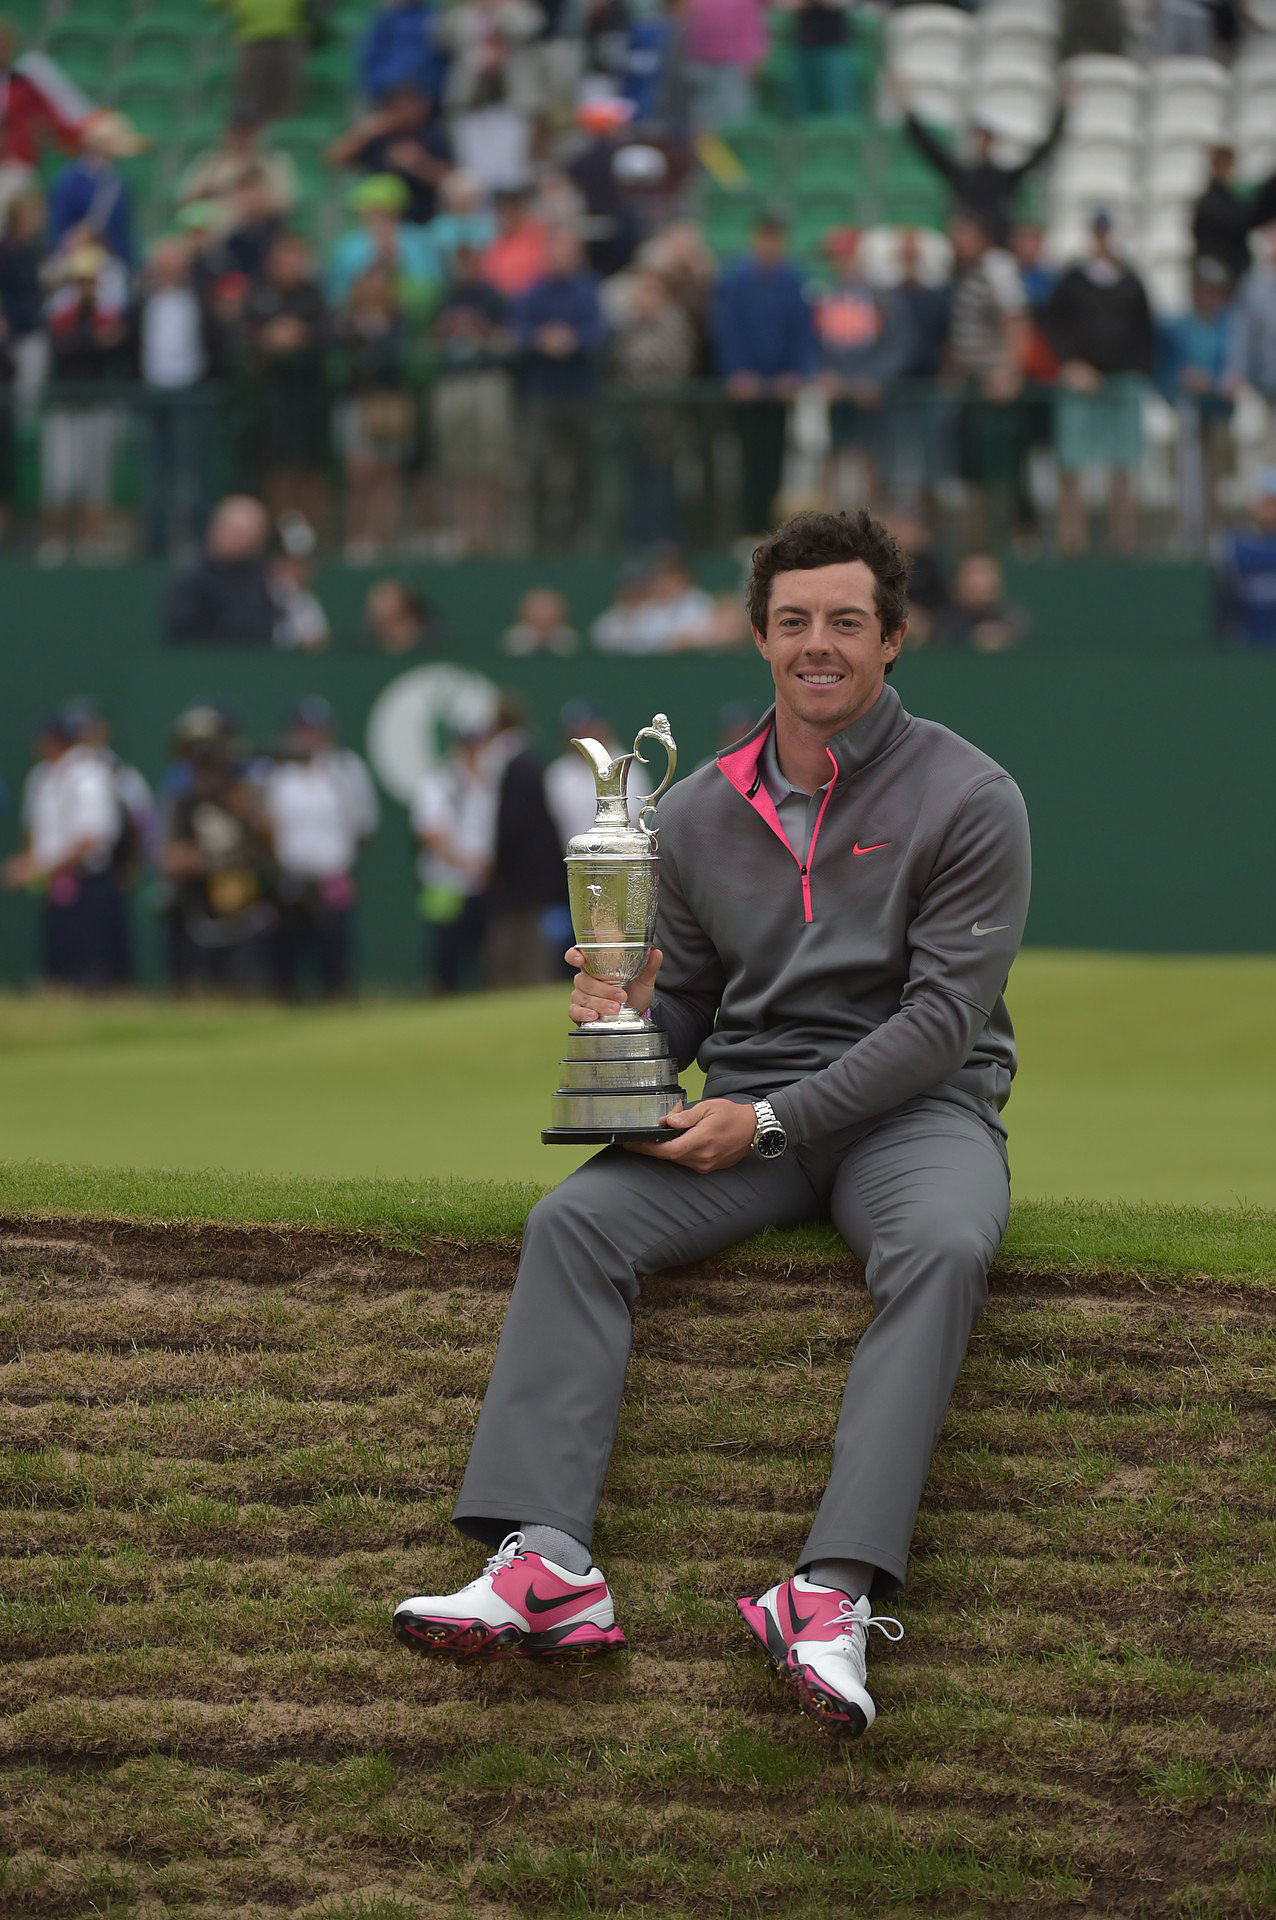 After a tie for 23rd at the U.S. Open, Rory shot back-to-back 66s in the first two rounds of the British Open at Royal Liverpool. He held off Sergio Garcia and Rickie Fowler on Sunday by two shots to win his third career major.